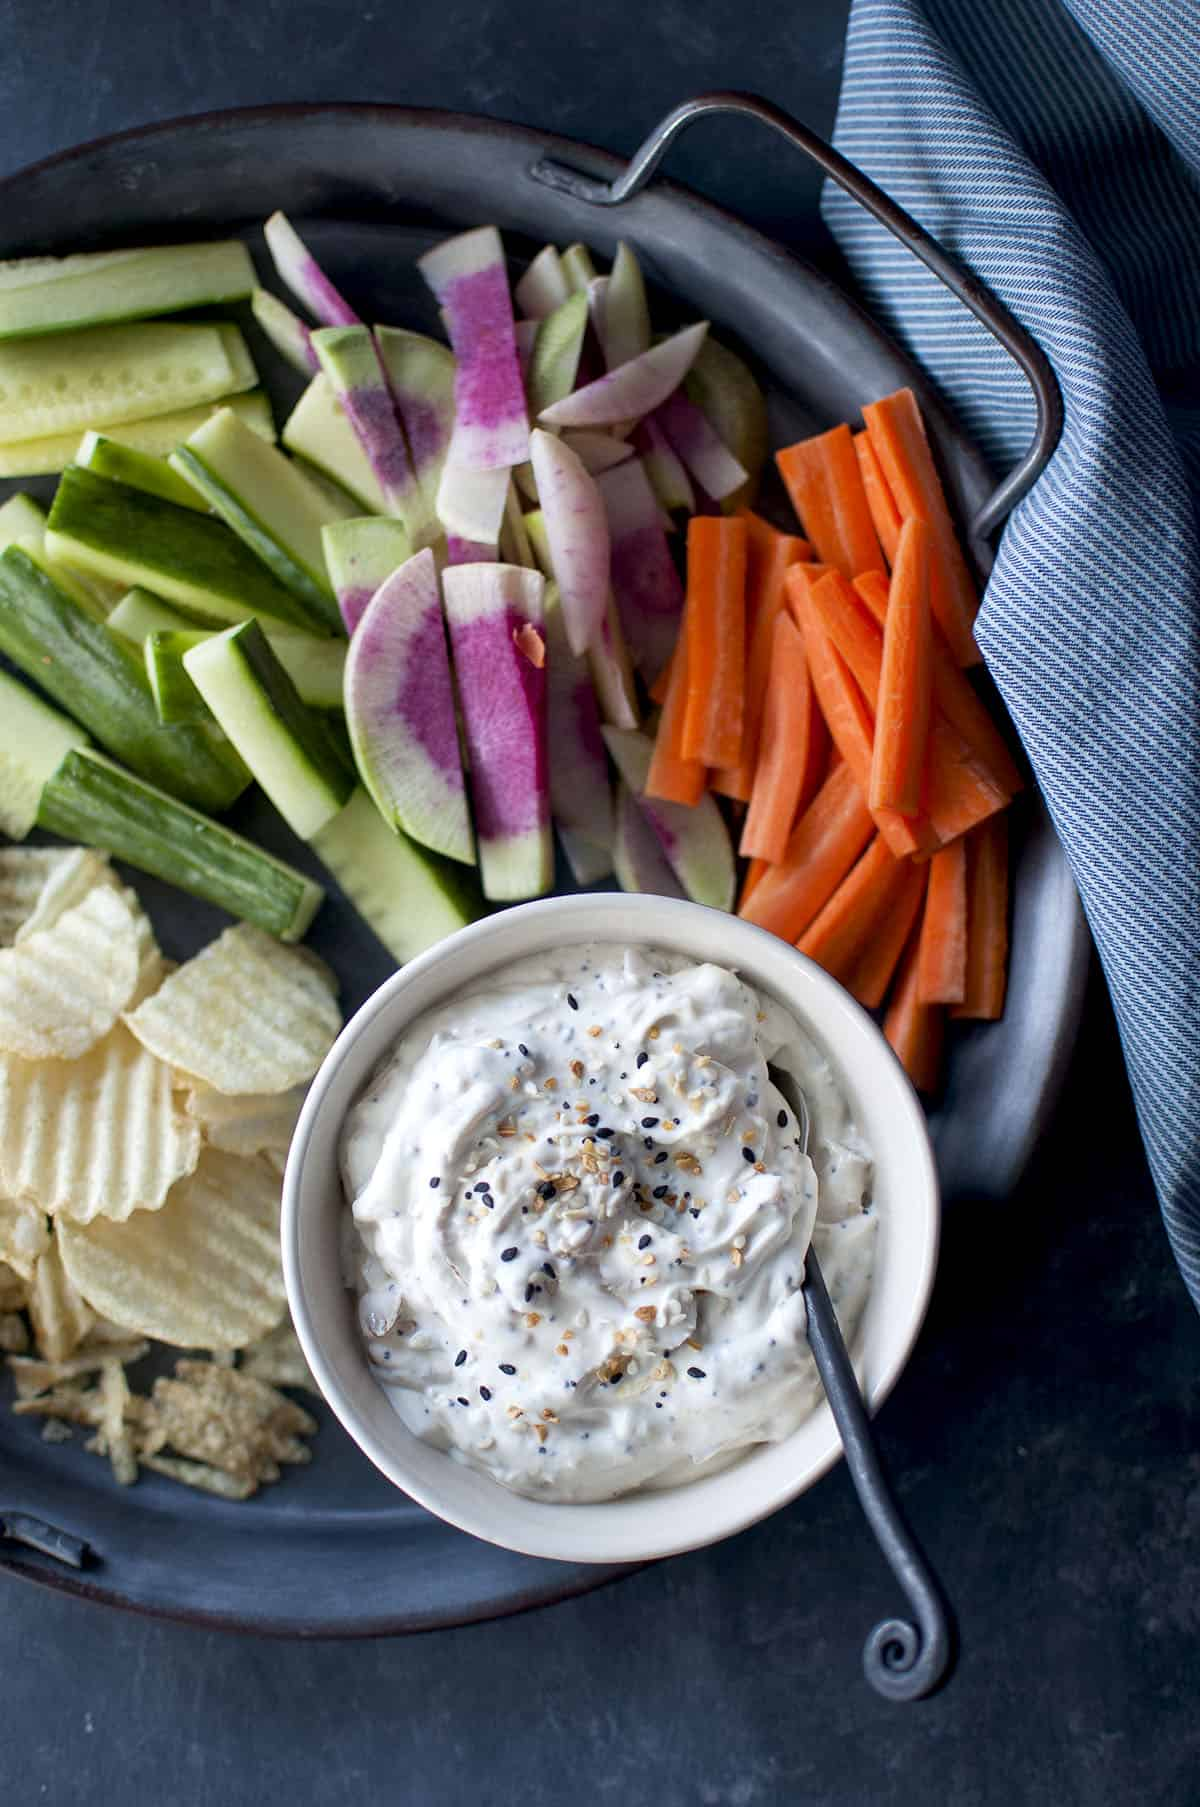 Tray with chopped veggies and a white bowl with bagel dip and a spoon